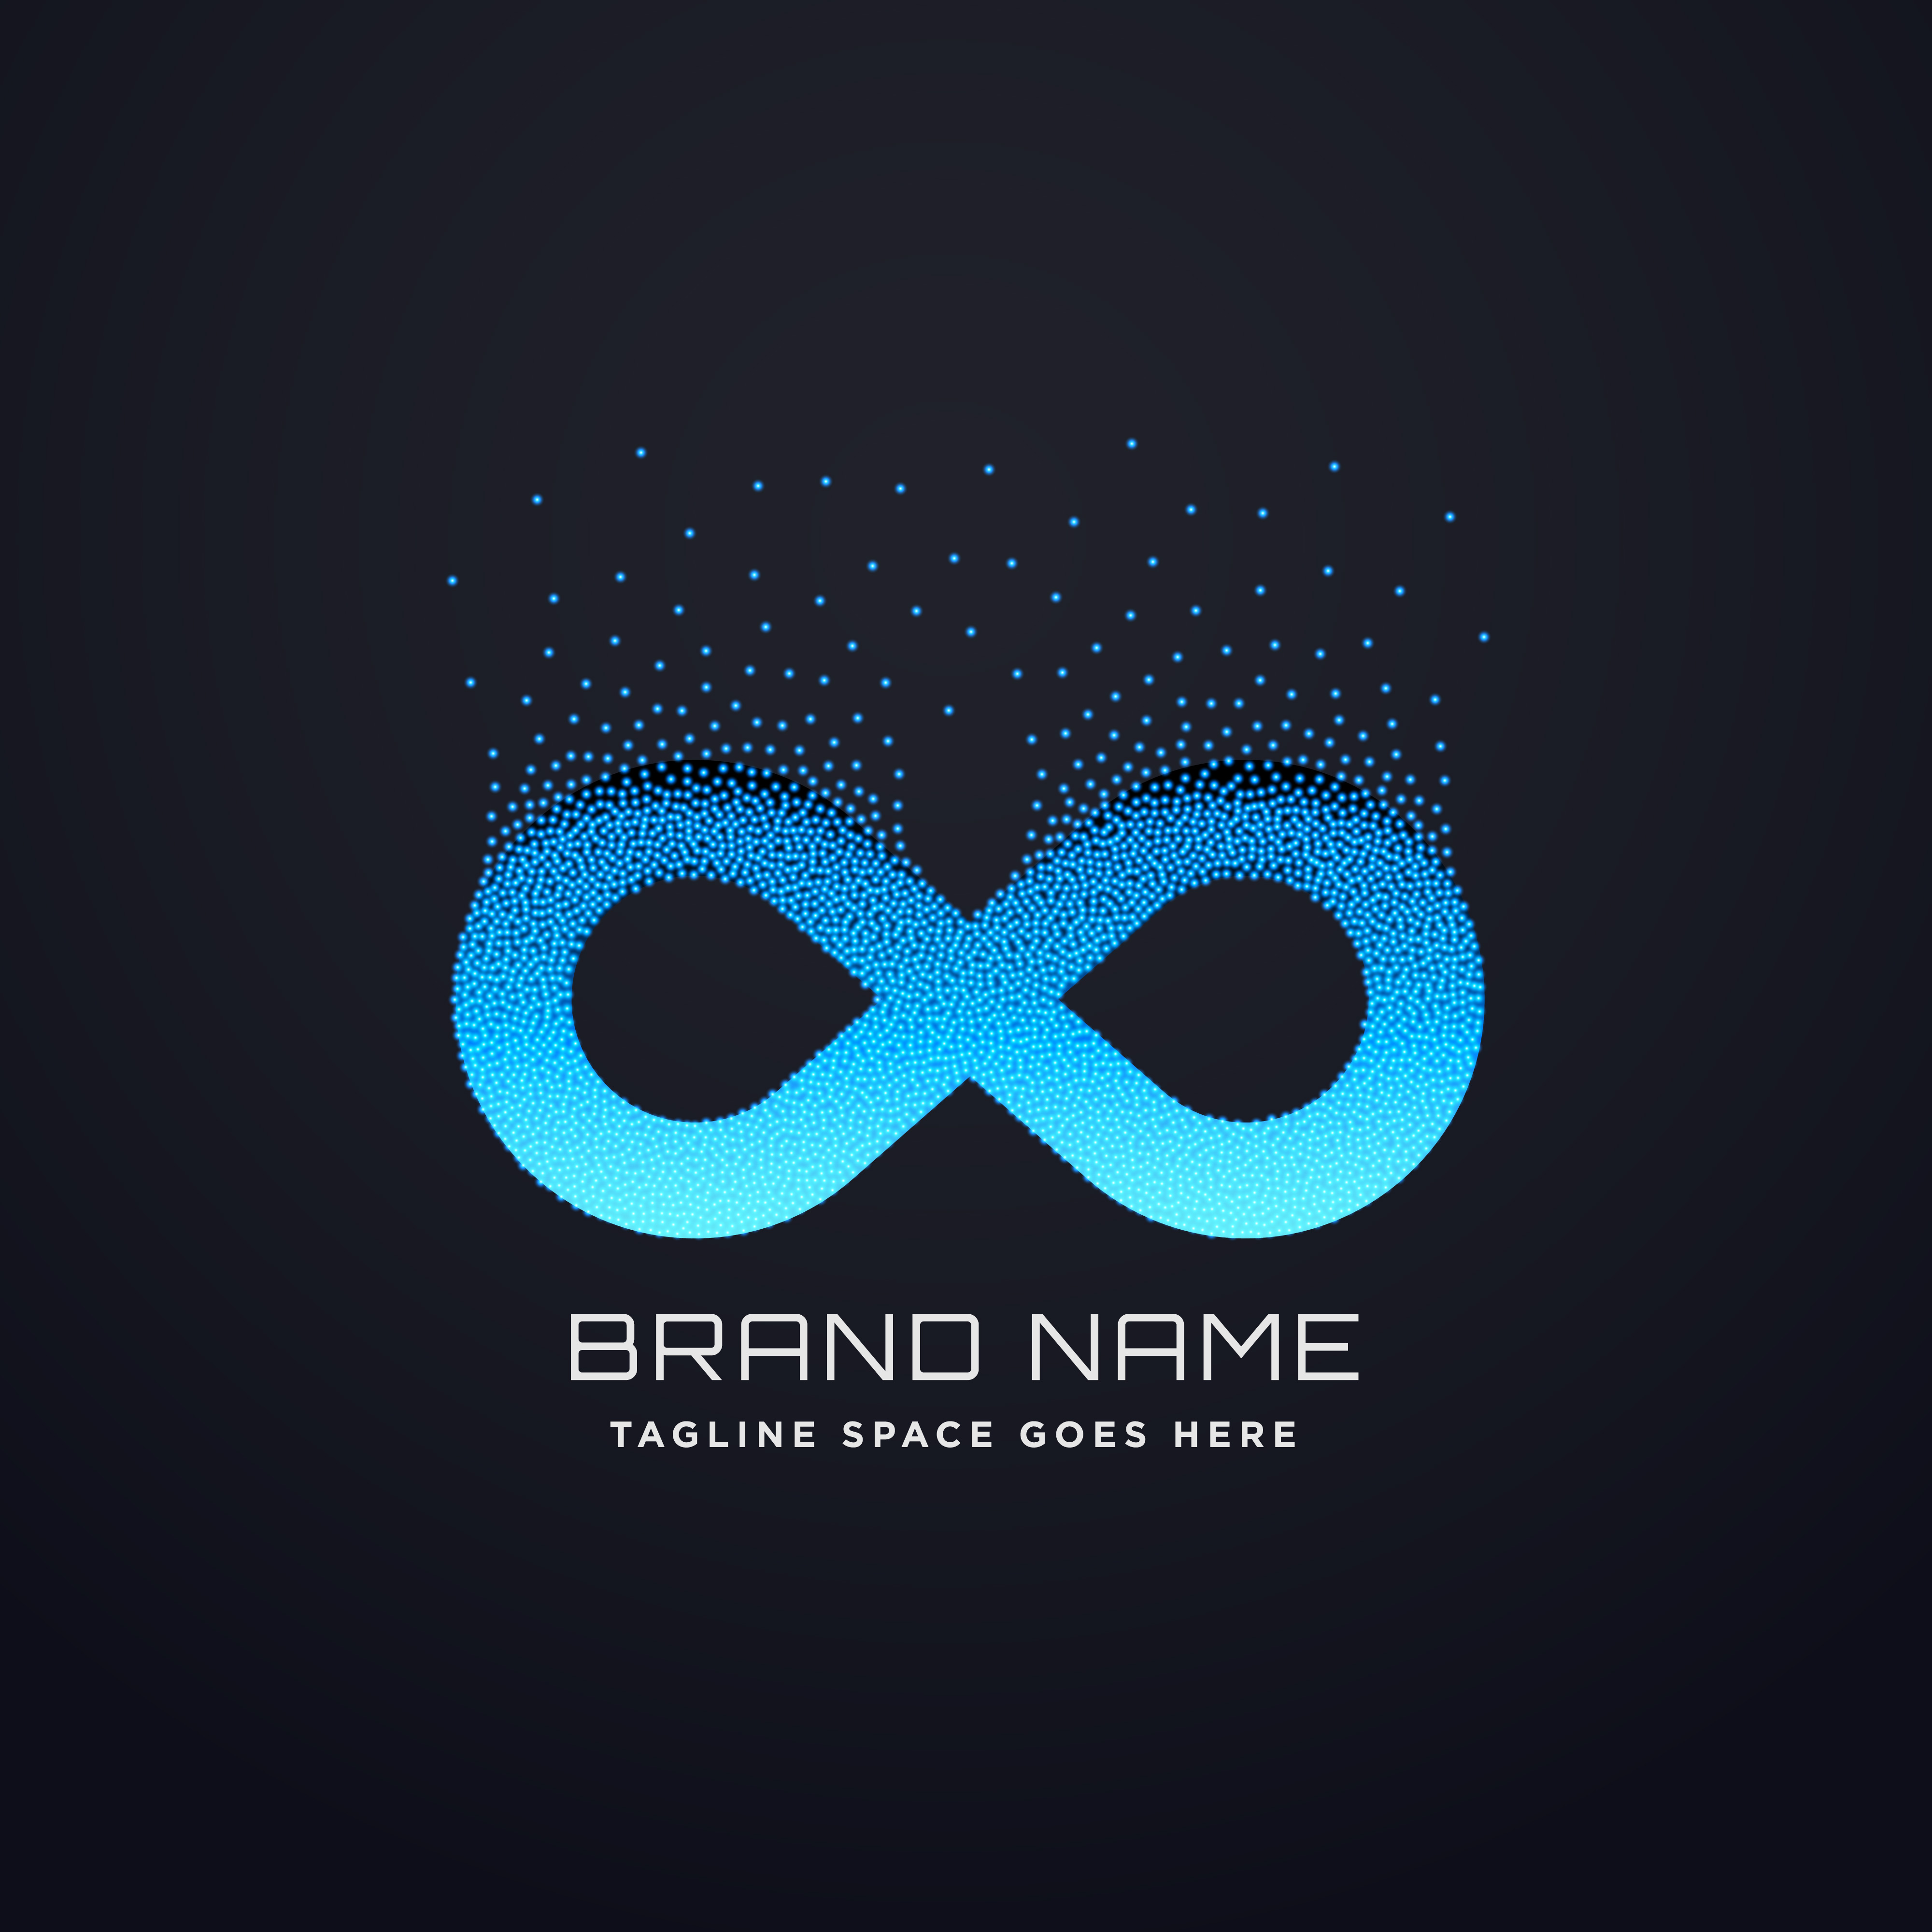 Abstract Logotype Collection: Digital Infinity Logo Design With Florating Particles